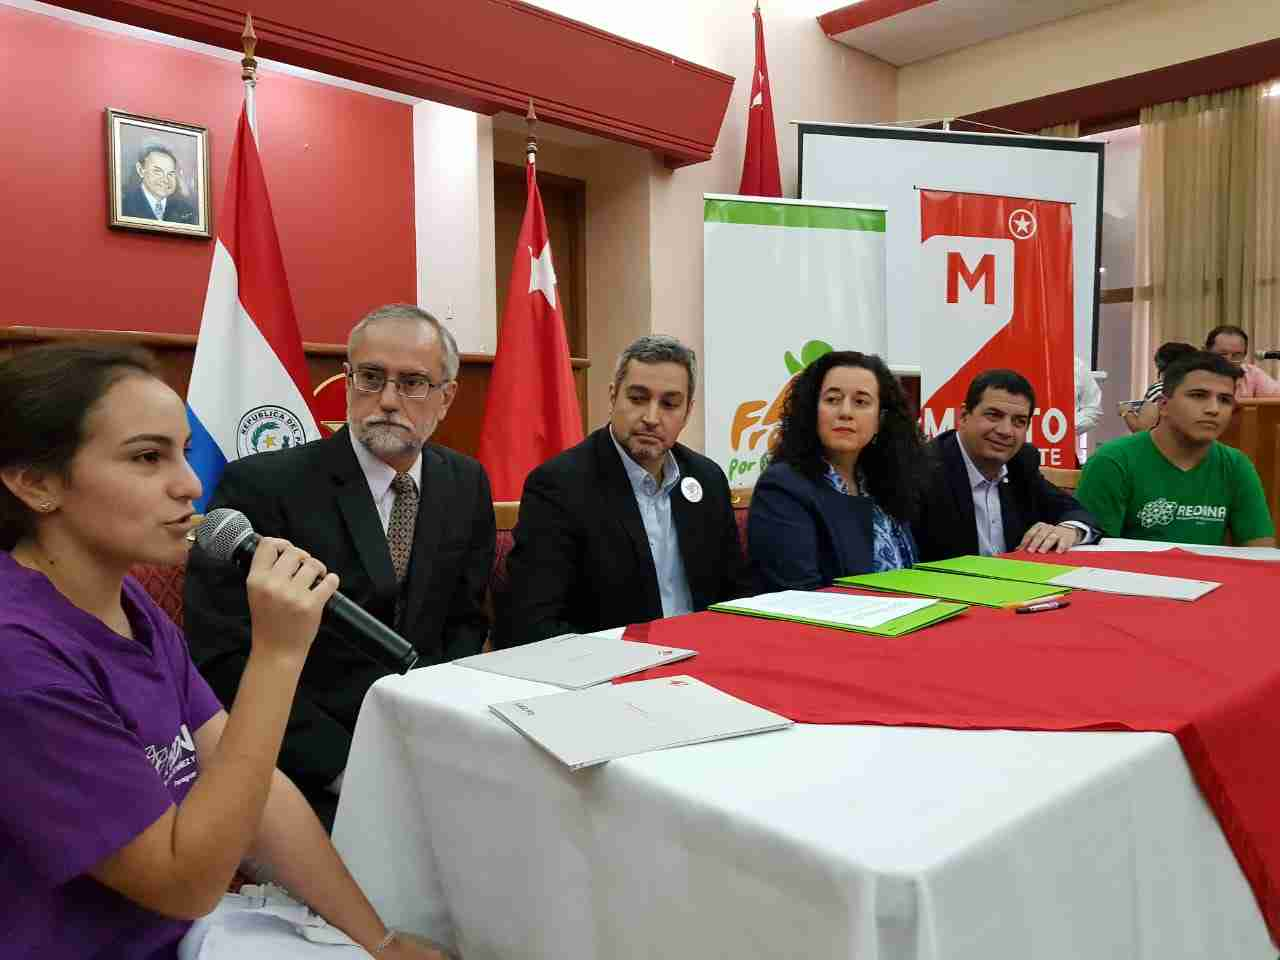 Youth speaks at table filled with dignitaries